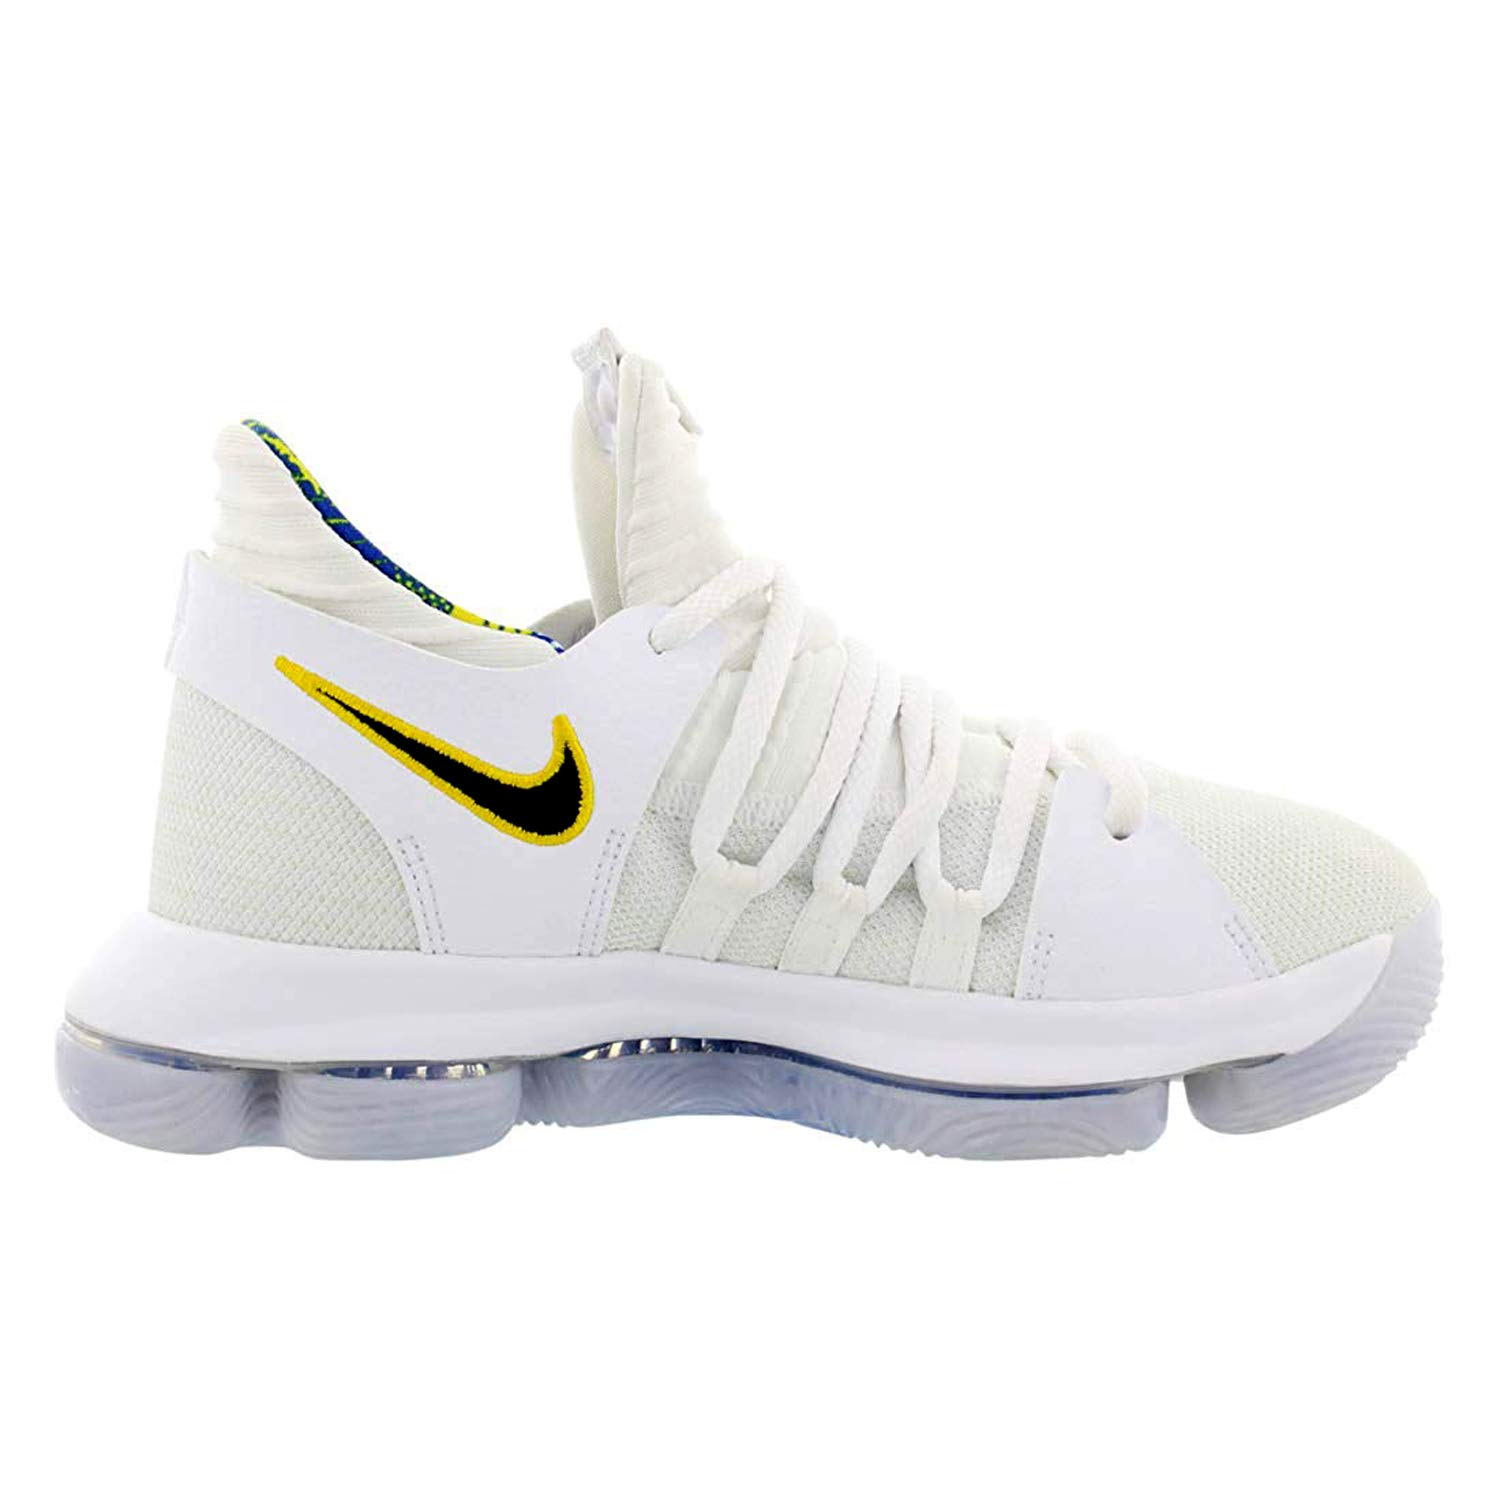 new product b500e 62cd8 Nike Zoom KD10 LMTD NBA Grade School Basketball Shoes (6 M US Big Kid,  White/Game Royal/University Gold)